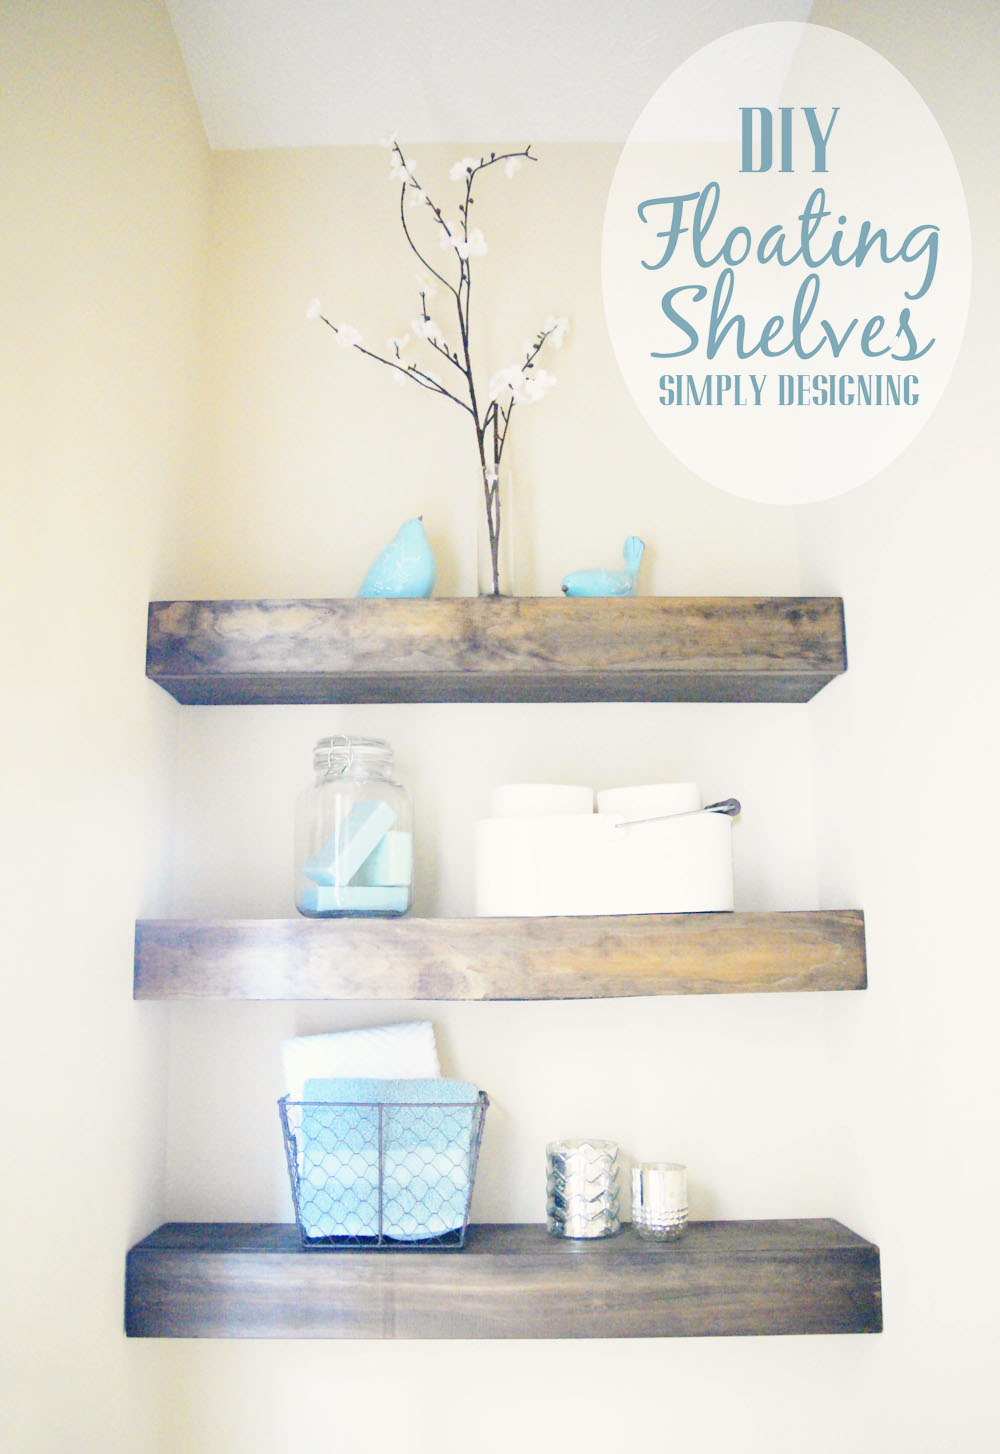 diy floating shelves how measure cut and install build your own are really easy make they the perfect shoe storage for small spaces reclaimed kitchen cube from ikea suncast corner